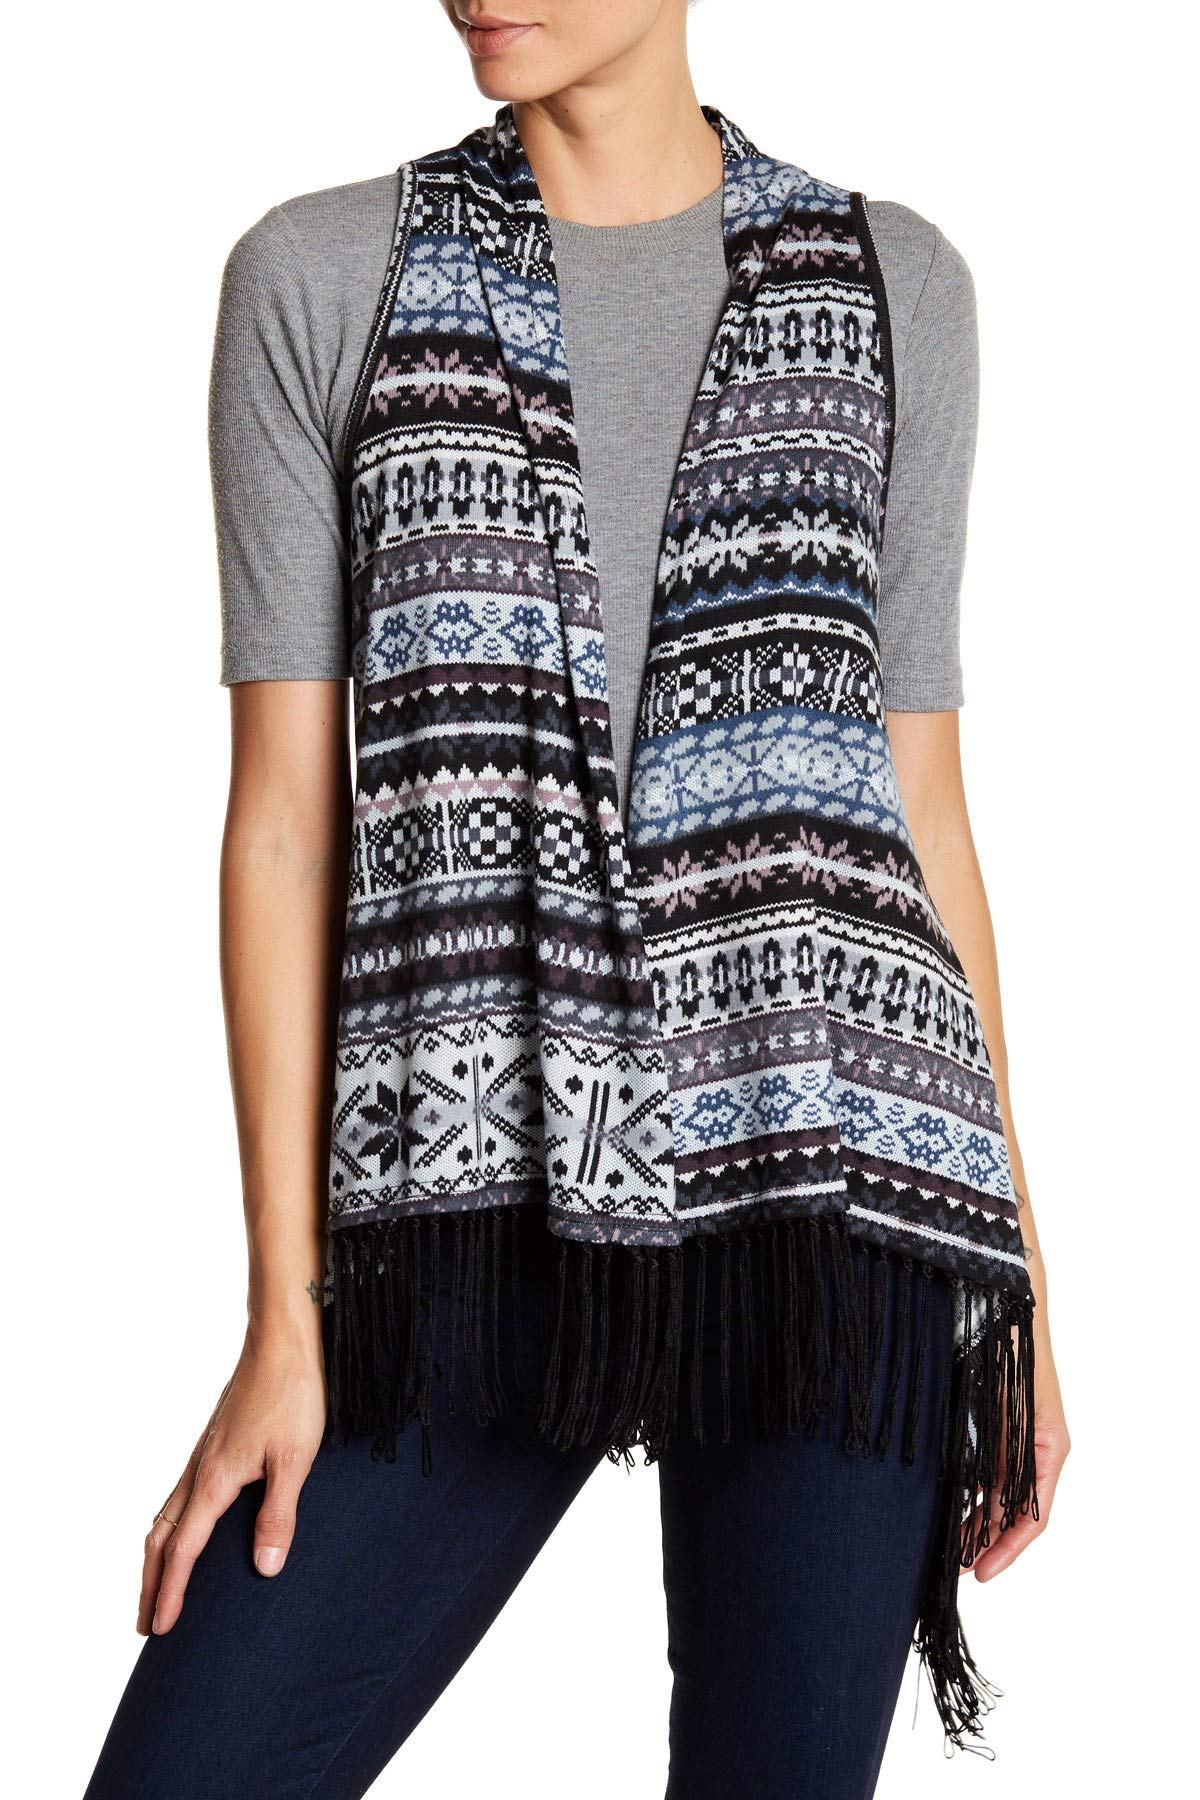 Papillon Fairisle Open Fringe Cardigan Vest for Women in Grey Print, Small